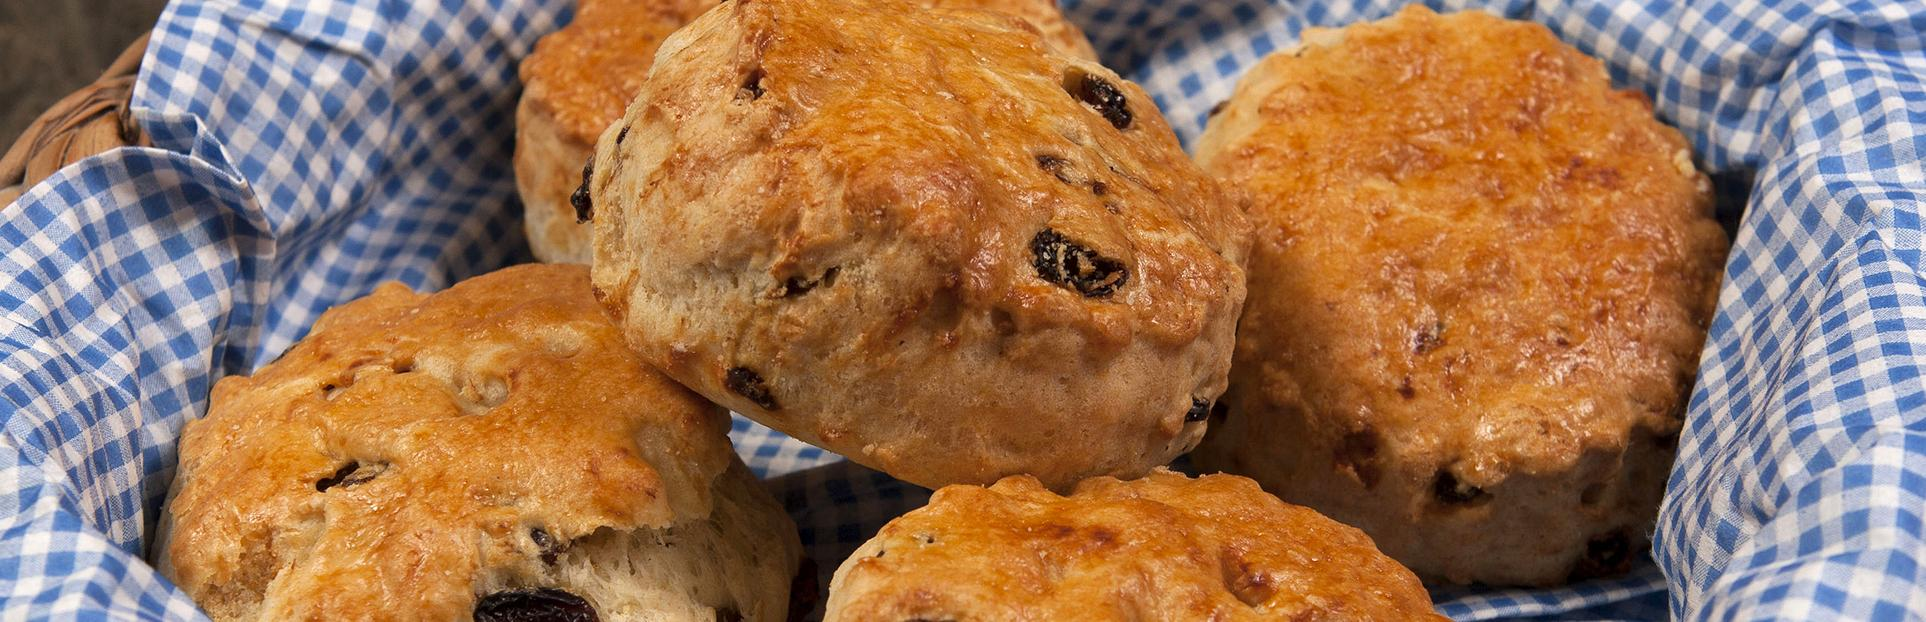 this is an image of scones in a basket